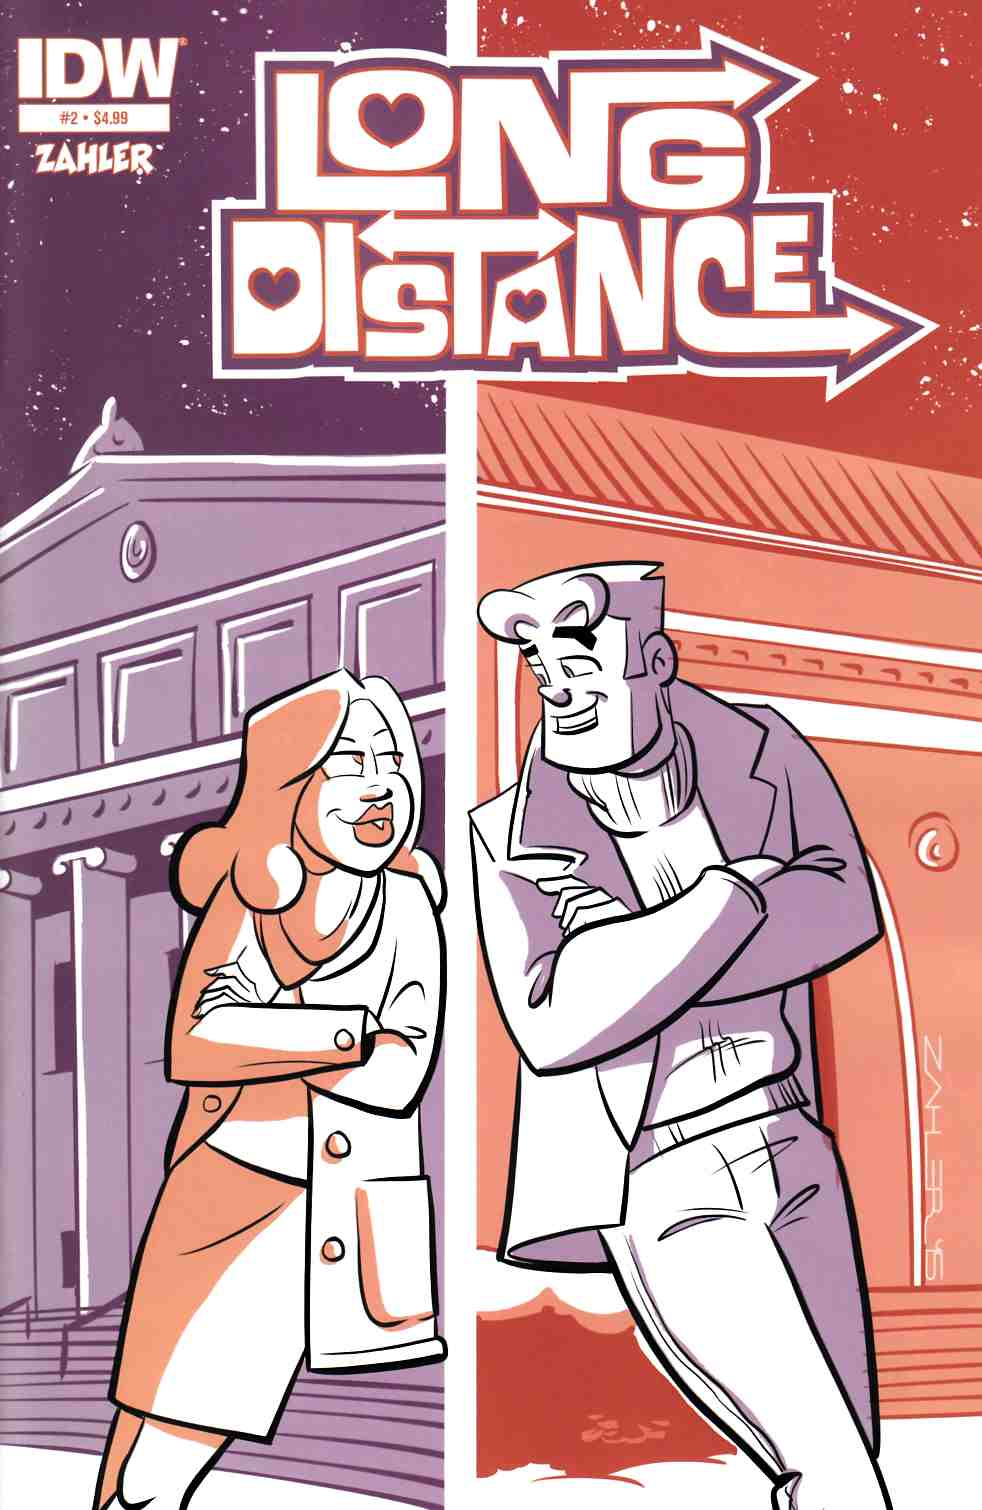 Long Distance #2 [IDW Comic]